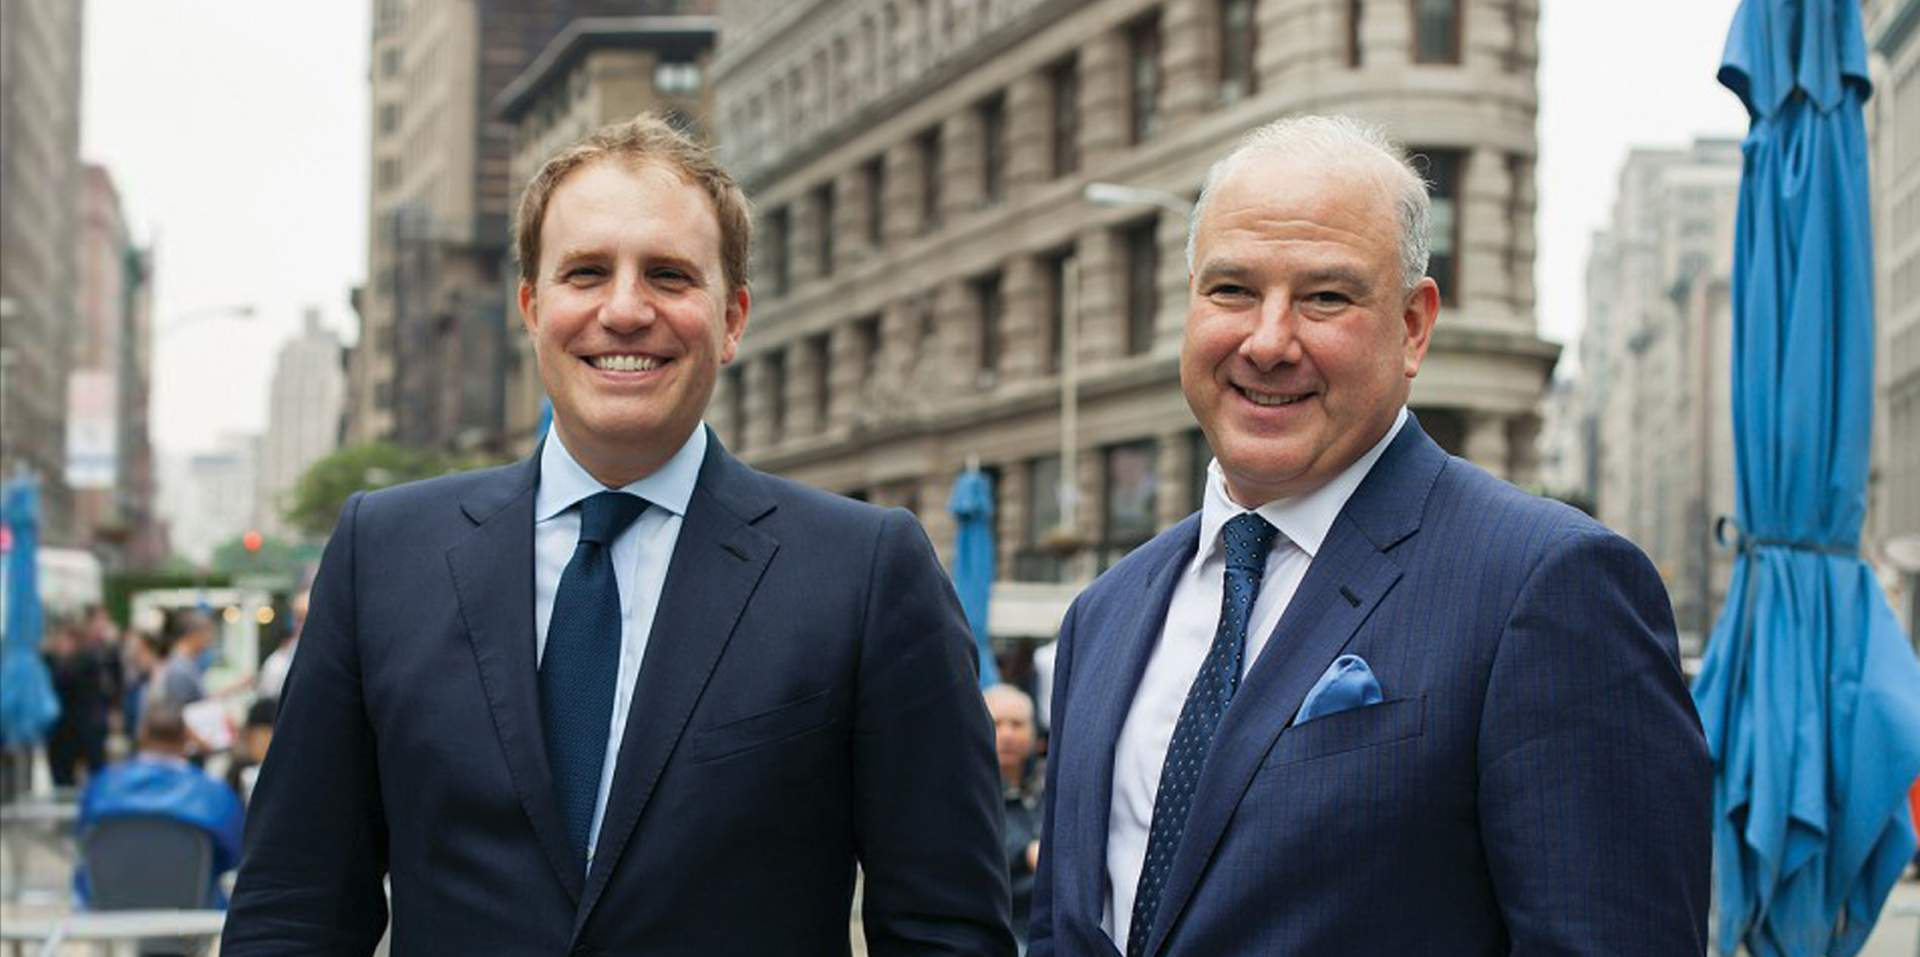 Gregory Grimaldi (left) and Alan Freudenstein, co-heads of Credit Suisse's fintech investment fund